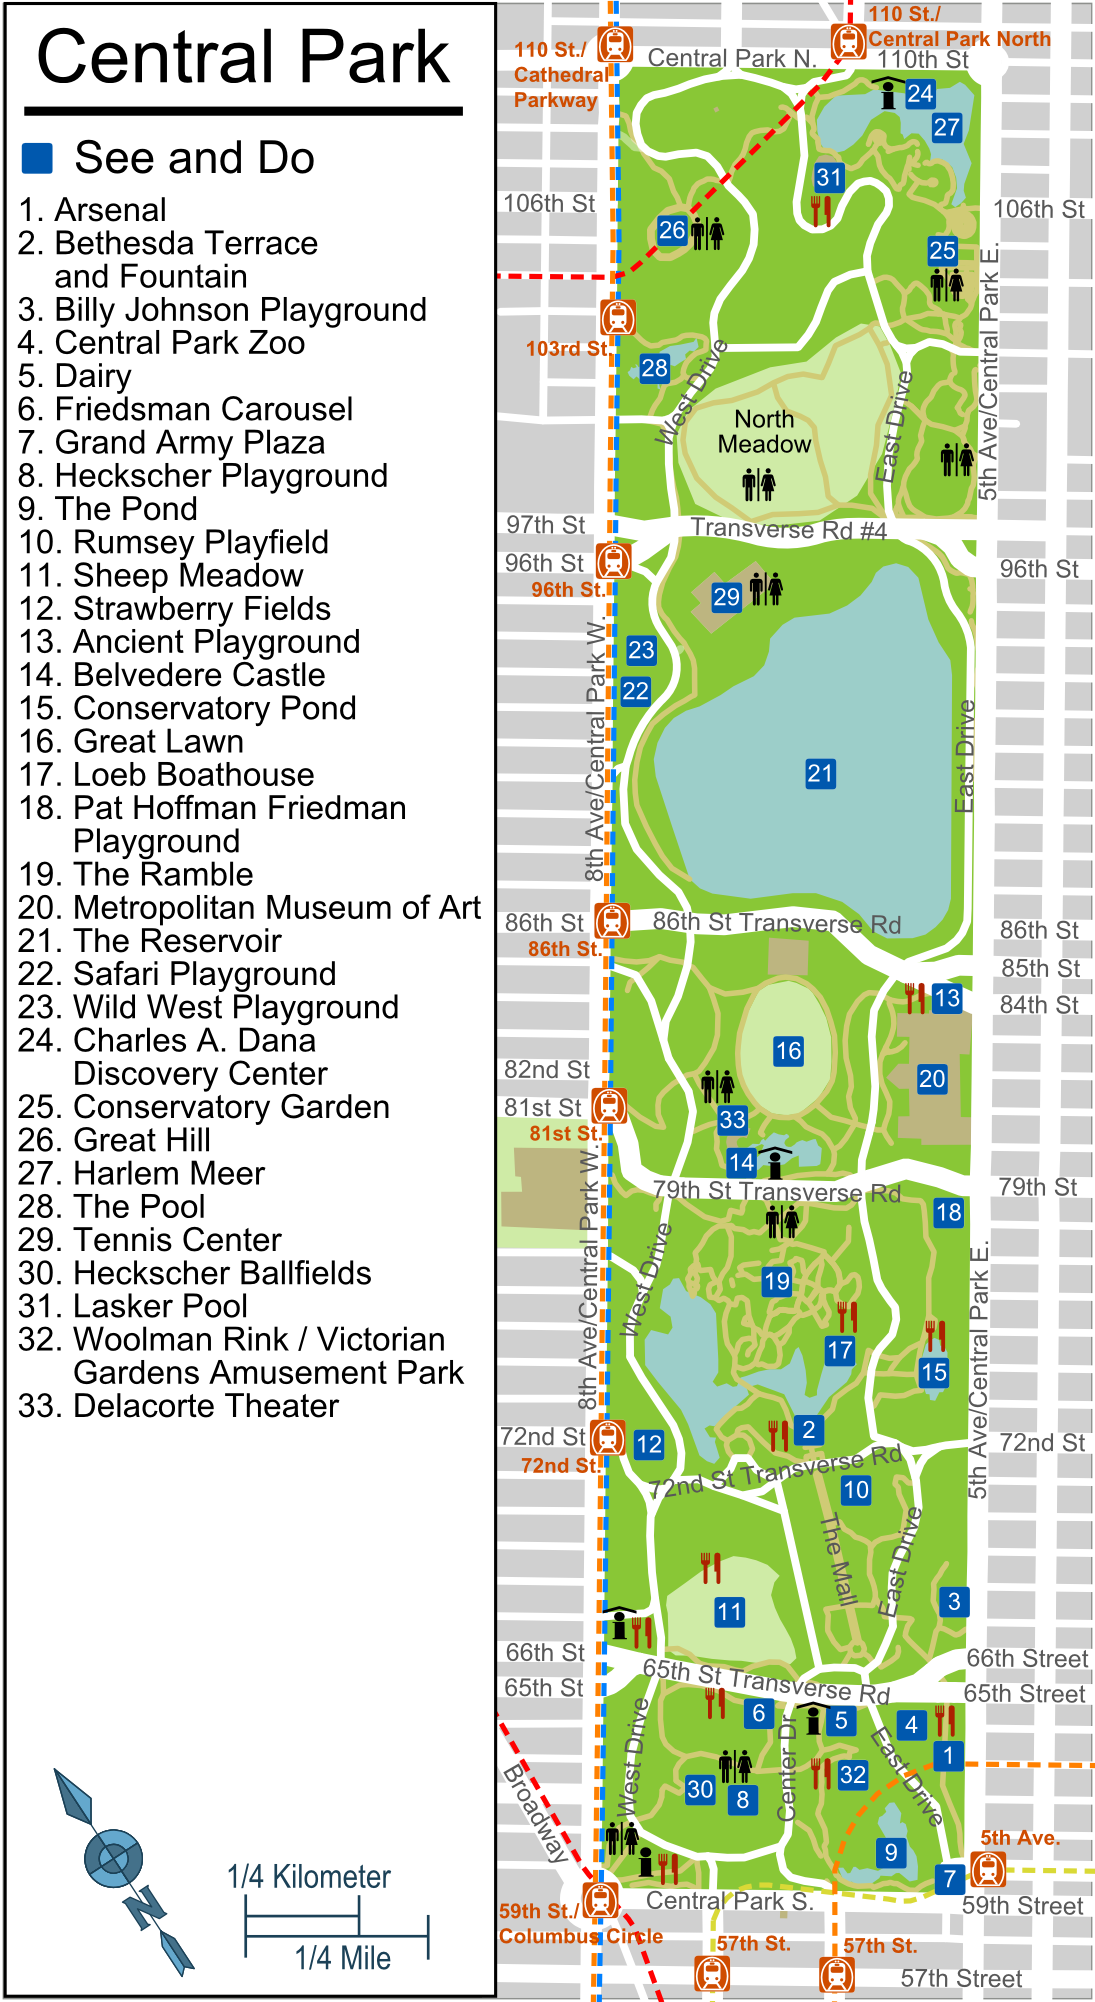 Similiar Tour Central Park Map Printable Keywords